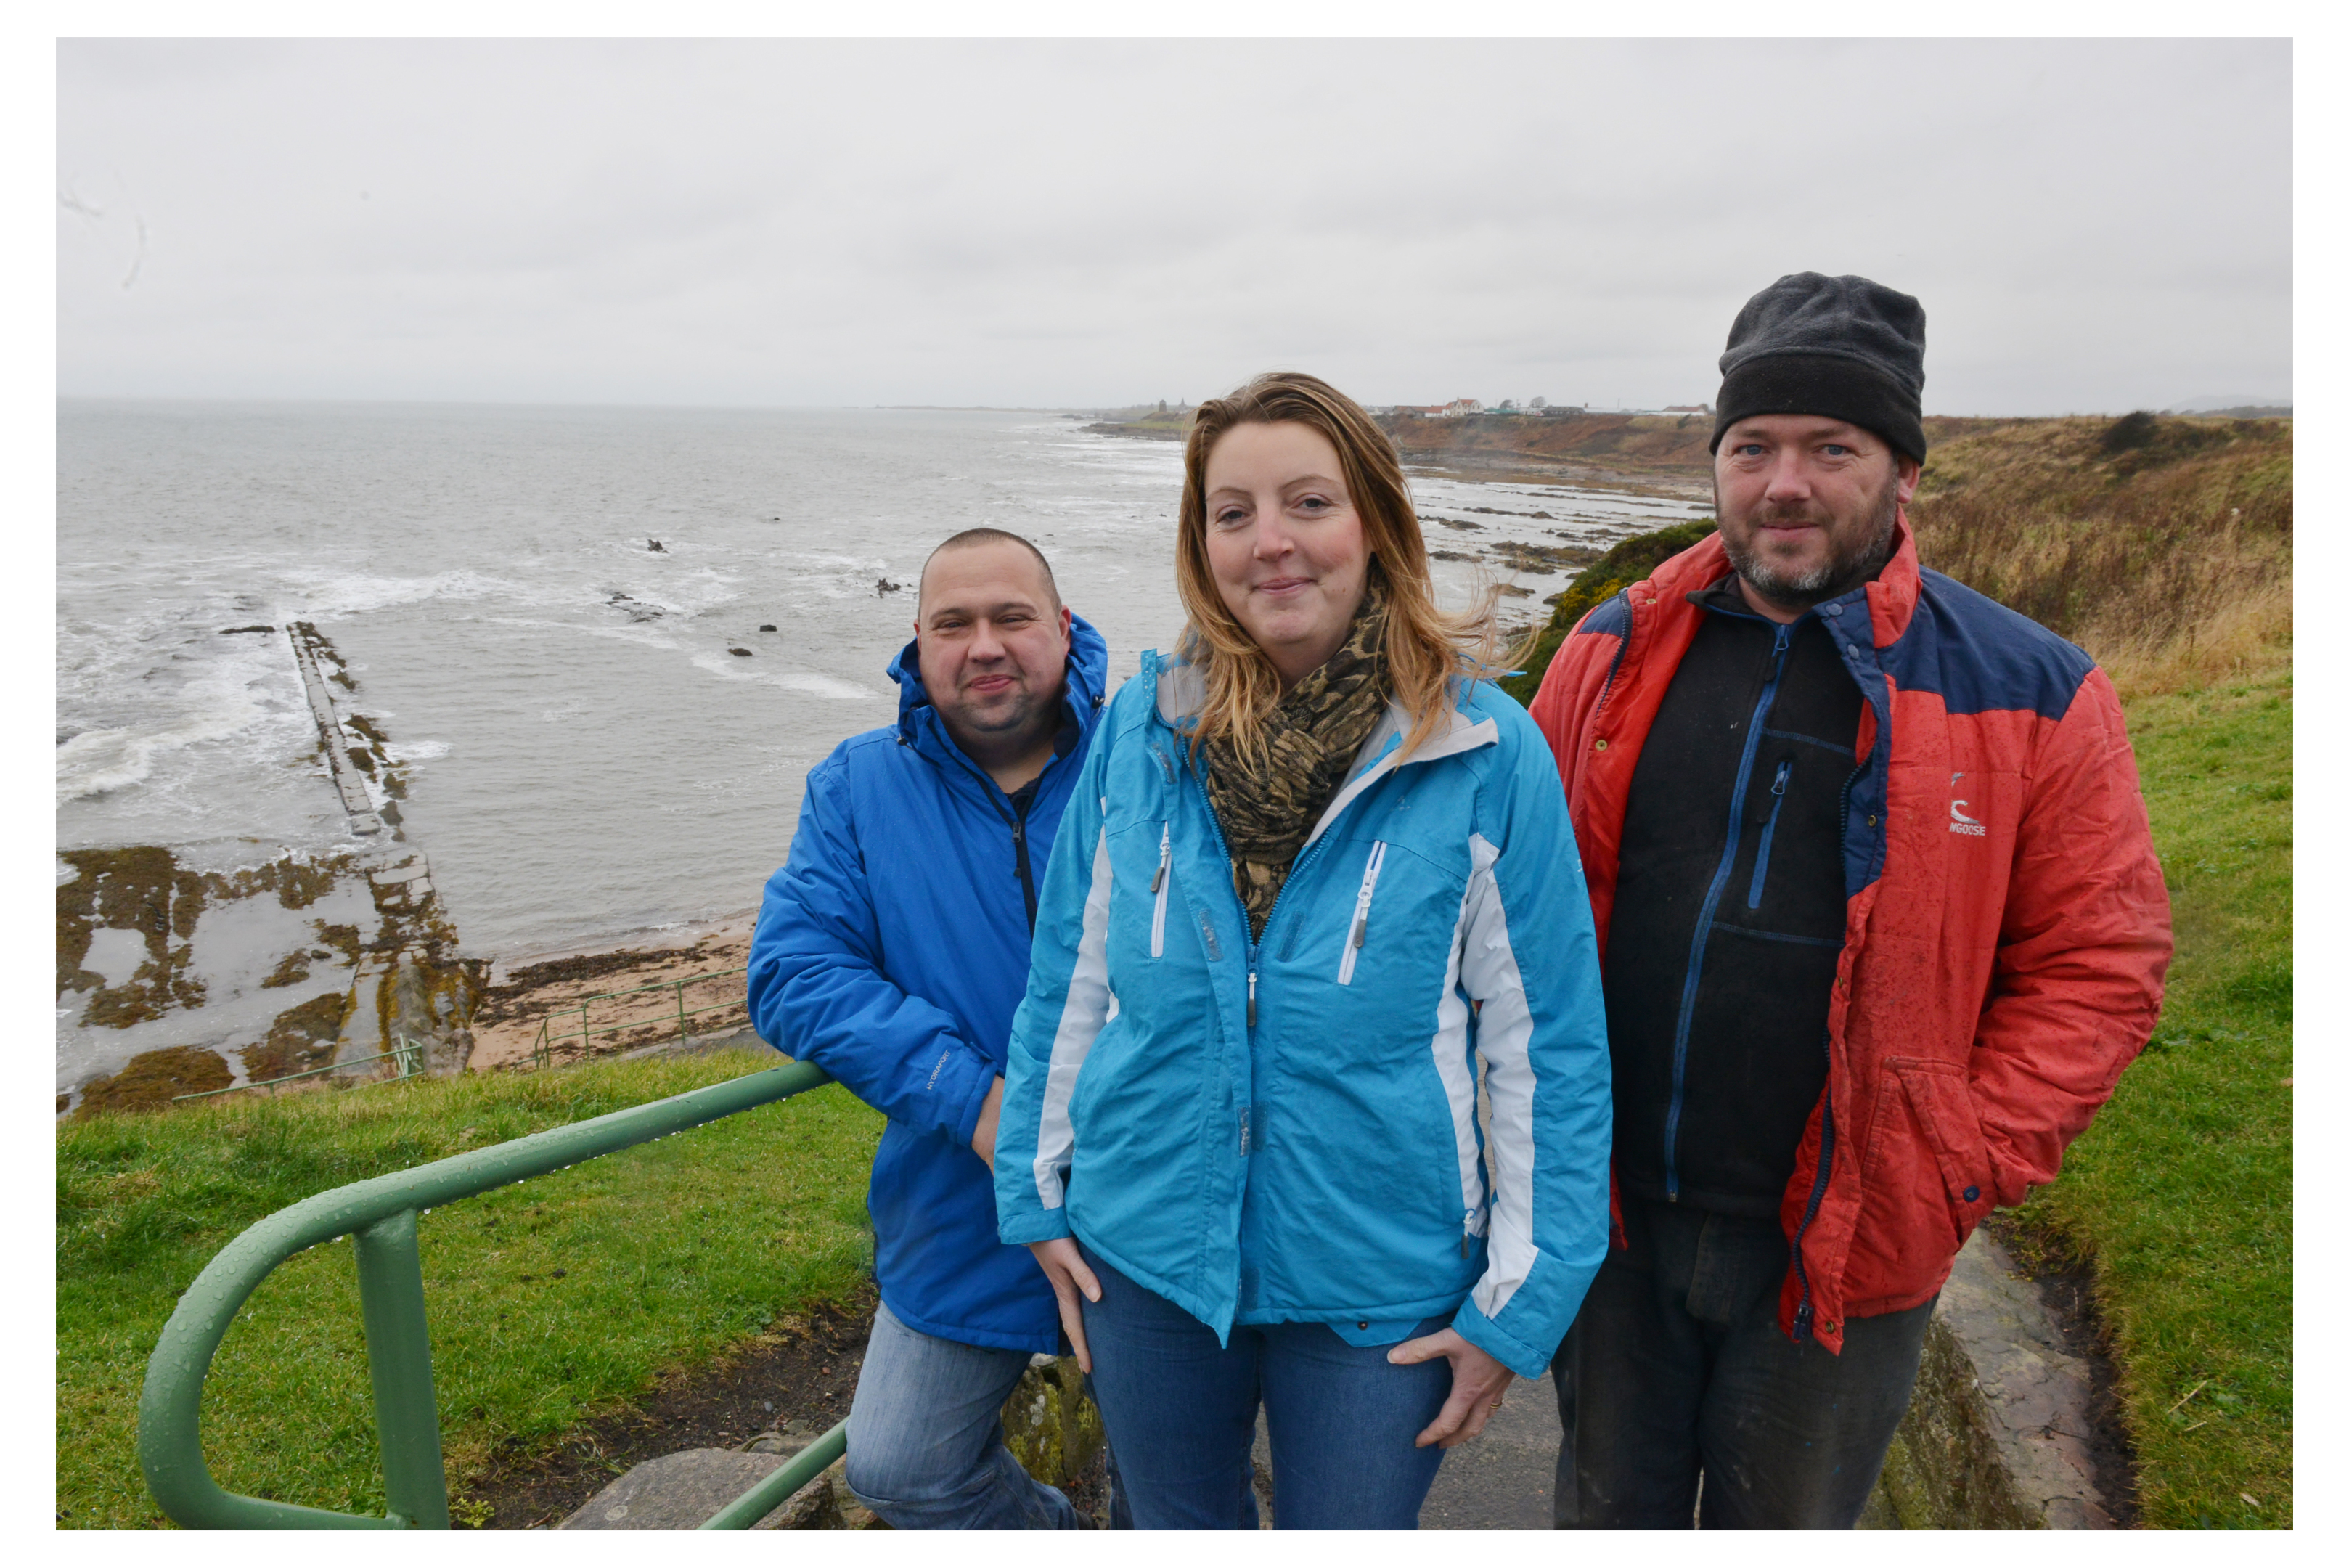 David Thomson, Robin Bremner and Nicola Thomson of the West Braes Project at the swimming pool